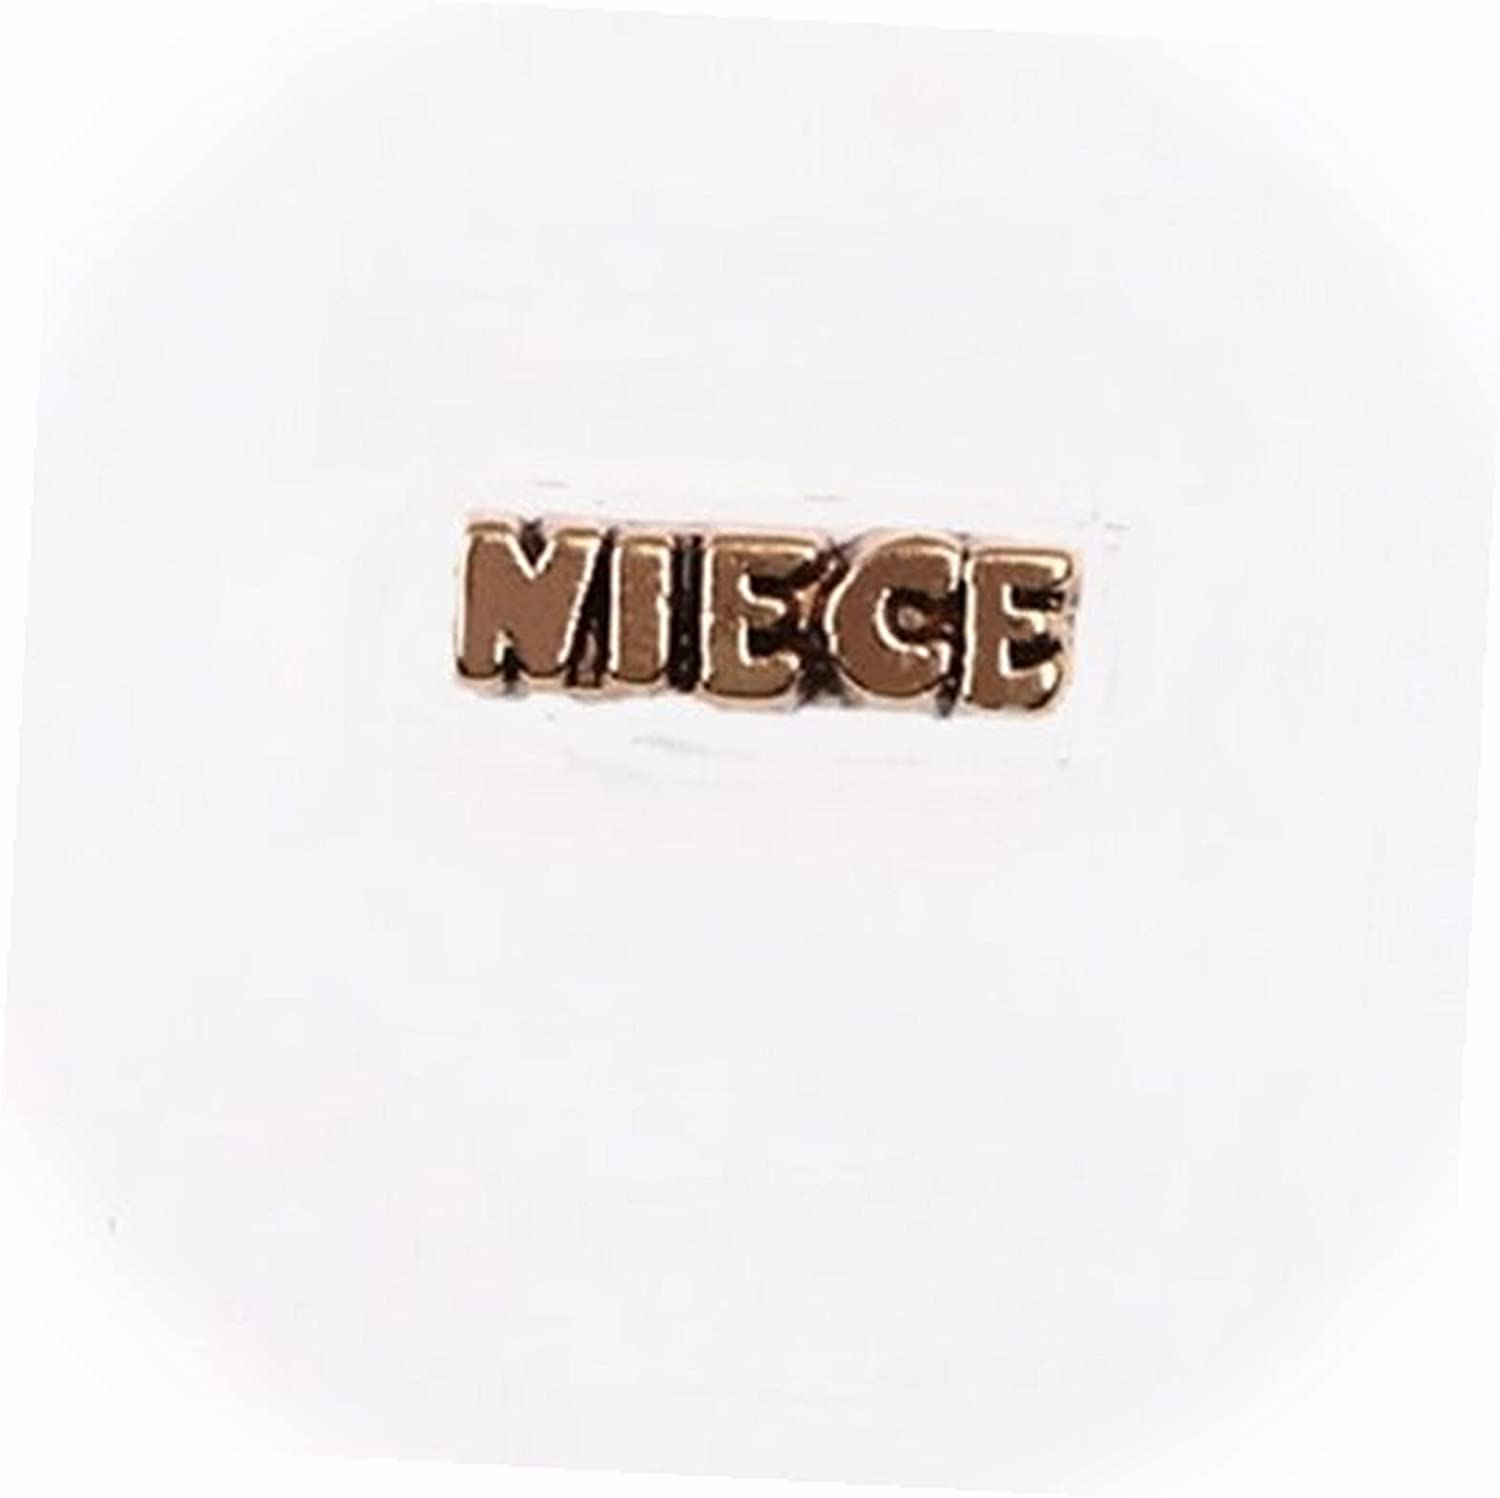 New Max 57% OFF Niece Gold Floating Charm for Memory 1 Locket CR0027CO Piece sold out